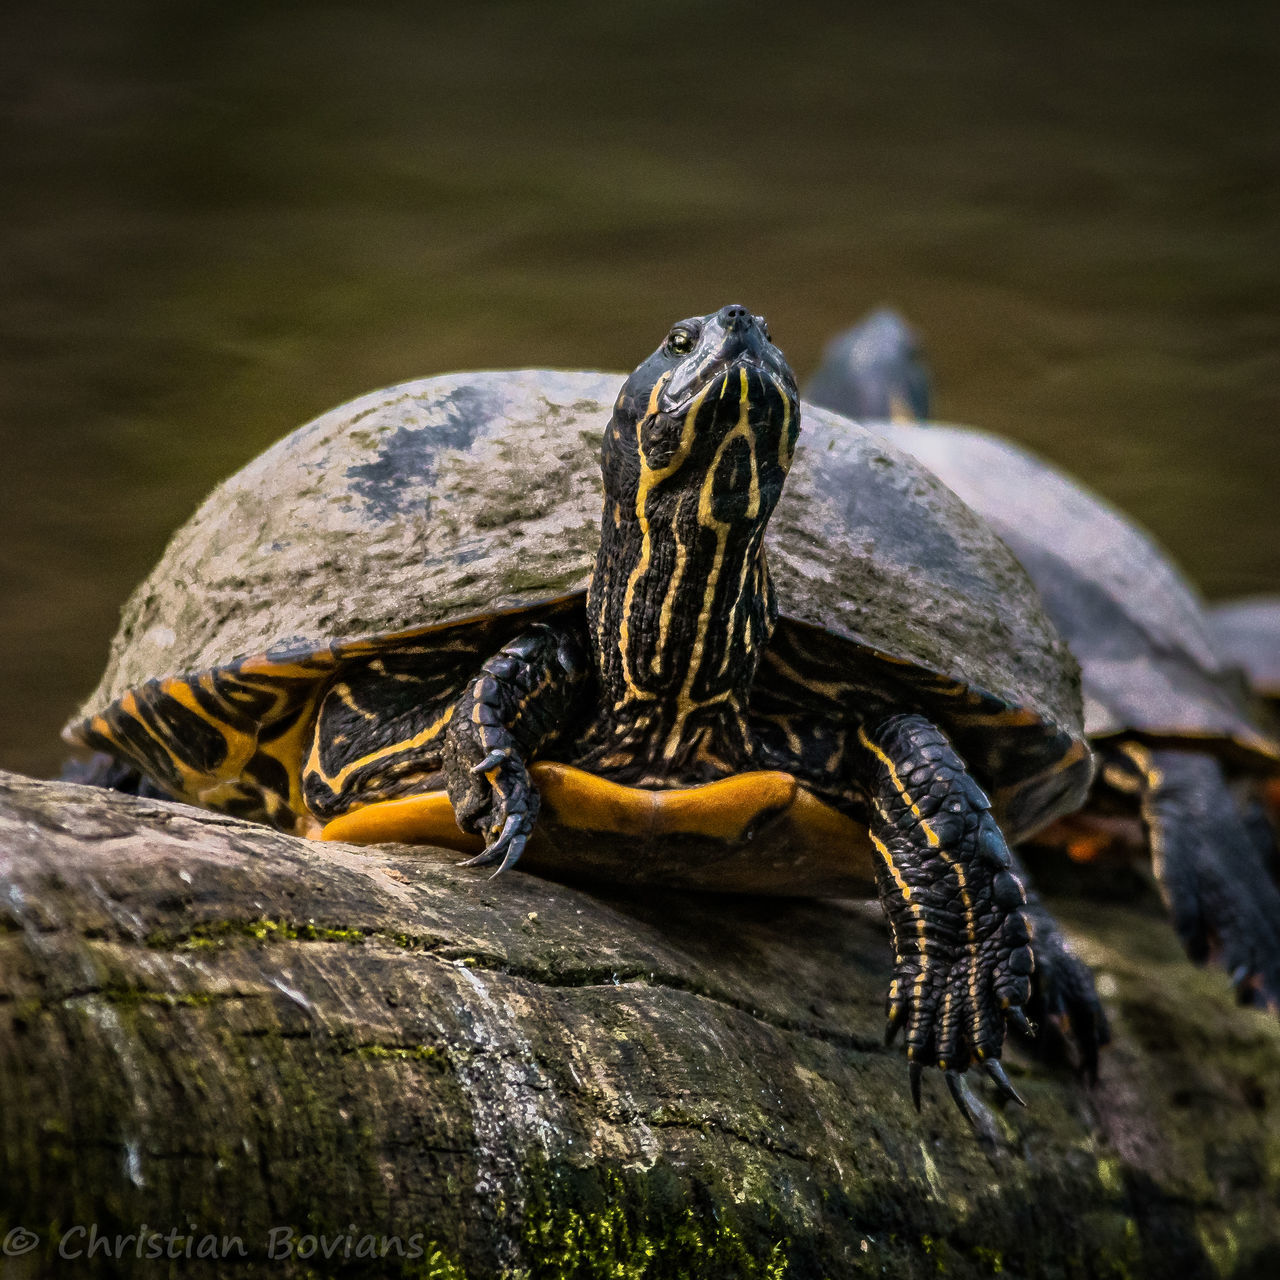 Turtle Reptile Animal Wildlife Animals In The Wild No People Outdoors Water Tortoise Close-up Tortoise Shell Nature Sigma18-300contemporary Sigma Sonyimages Sonyalpha6500 Day Standing Water Schlosspark Sigma Contemporary